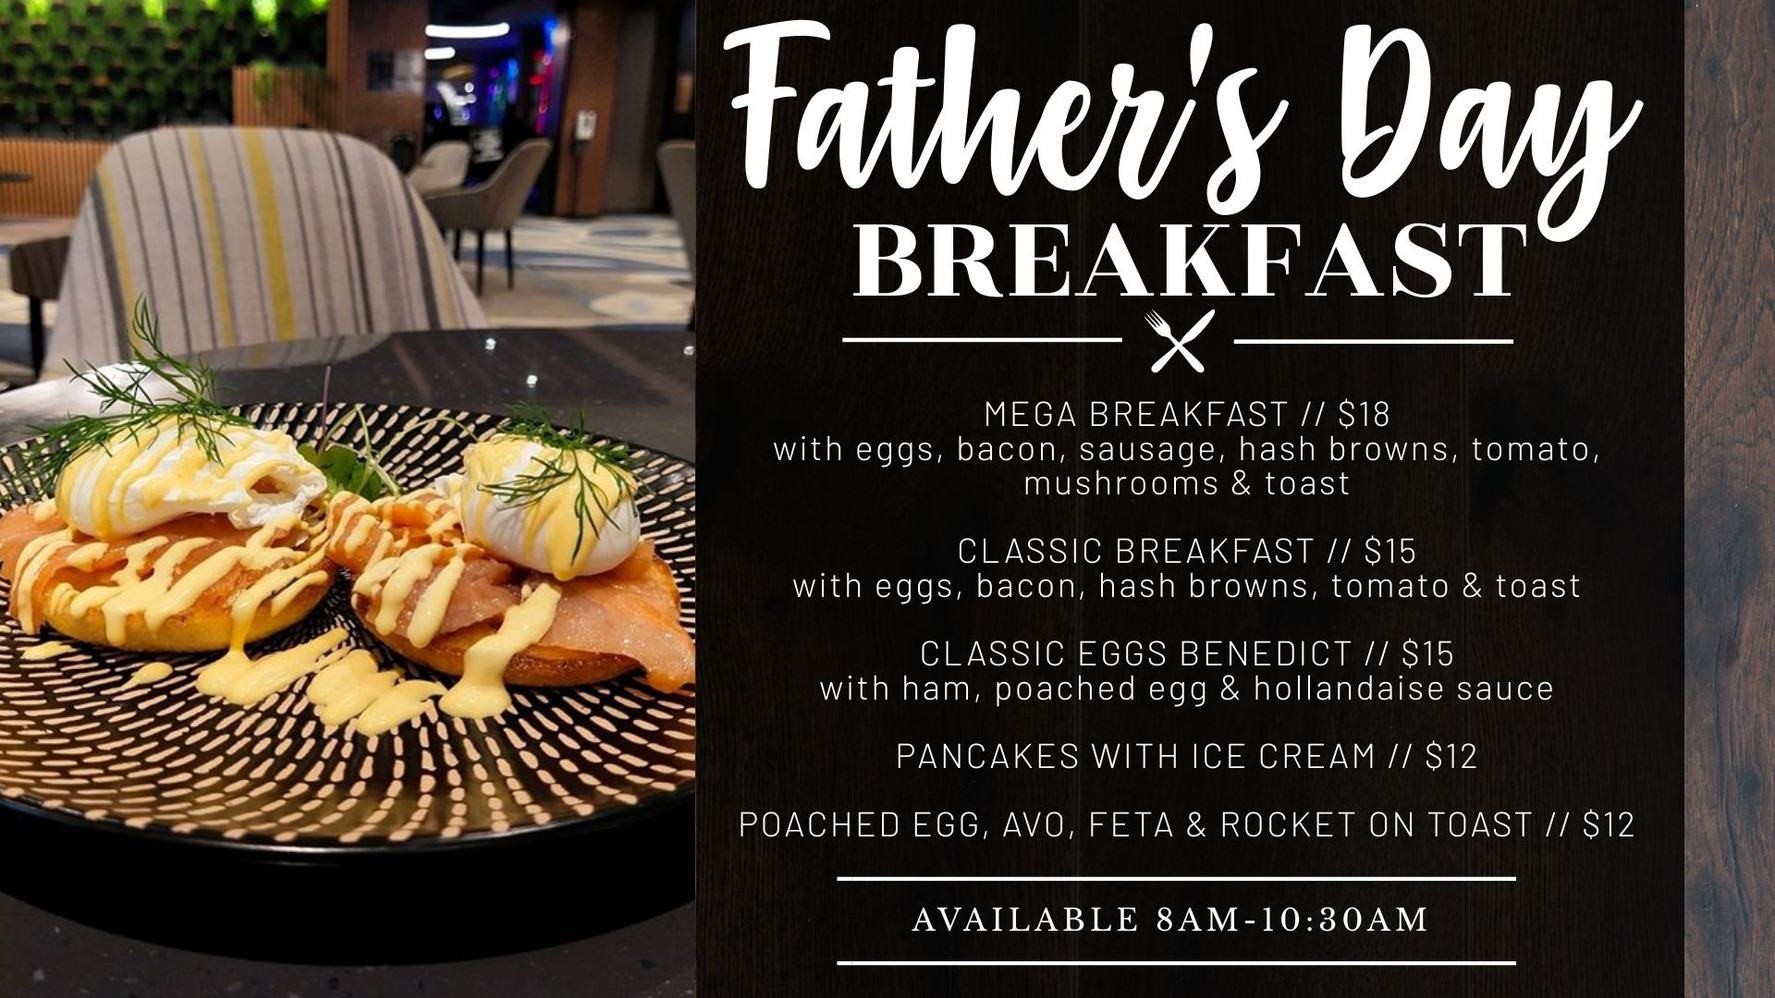 Father's Day Breakfast menu